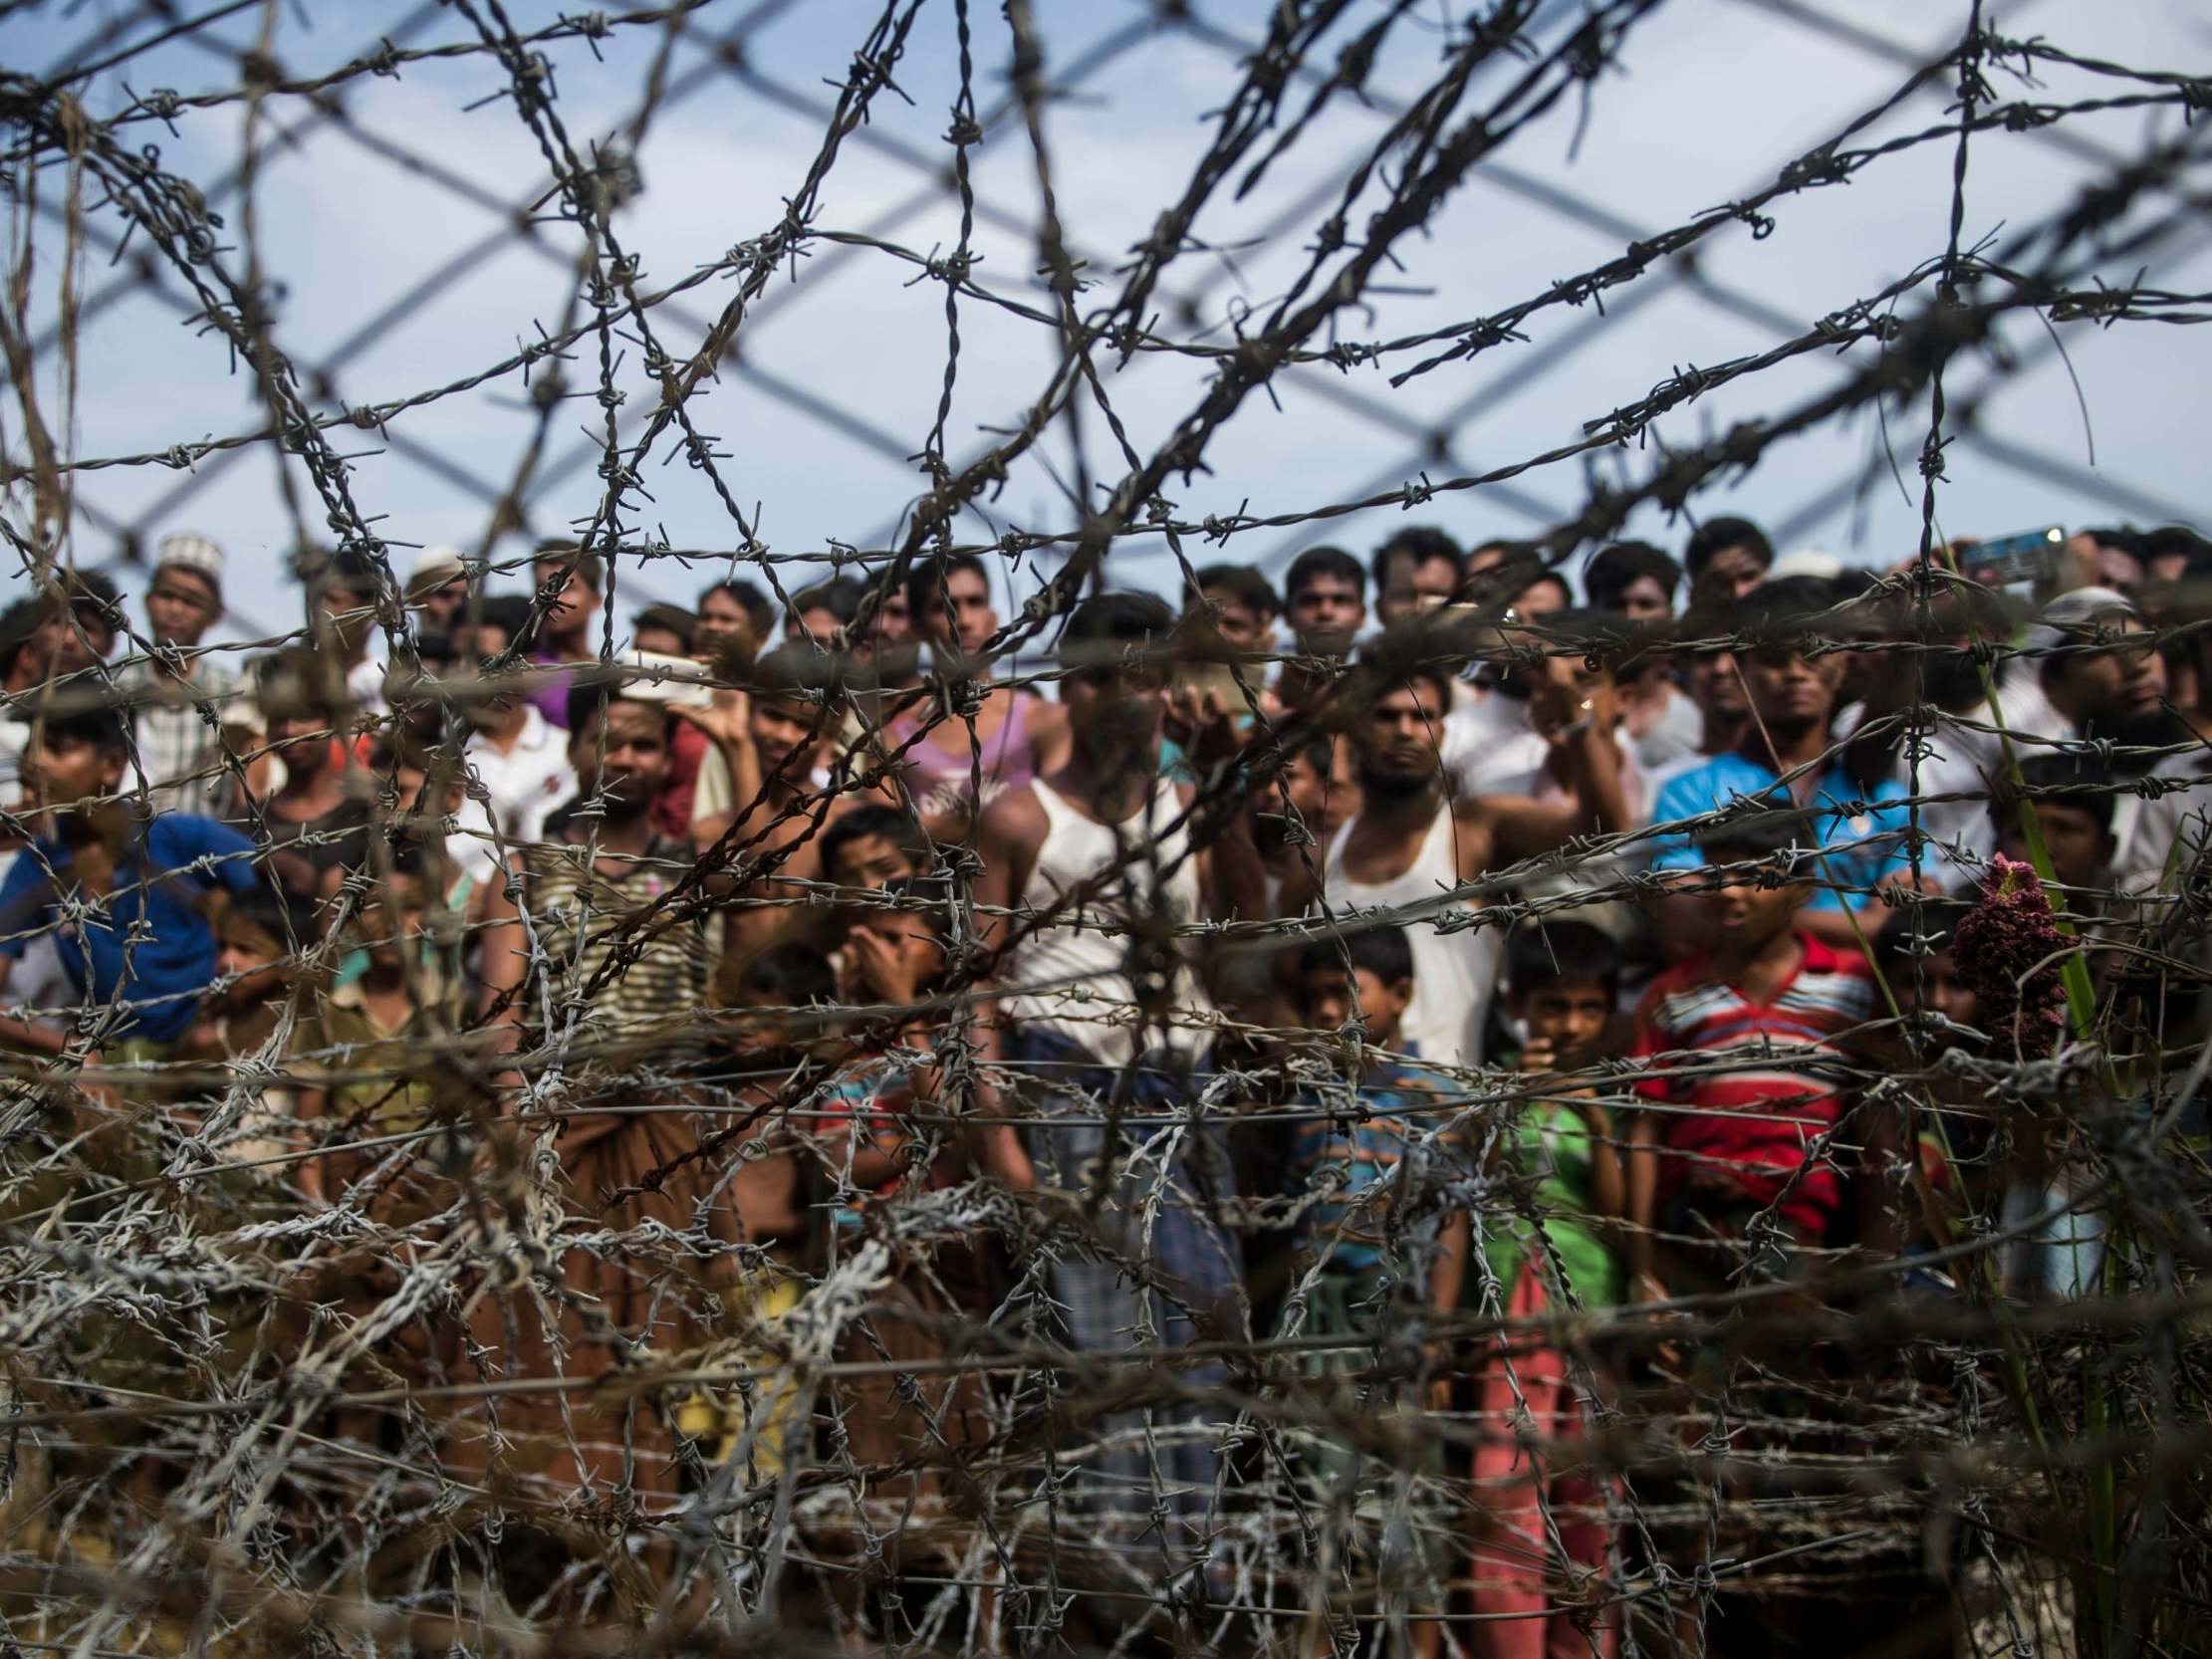 Israel ambassador sends 'GOOD LUCK' message to Myanmar ahead of genocide hearings at the Hague